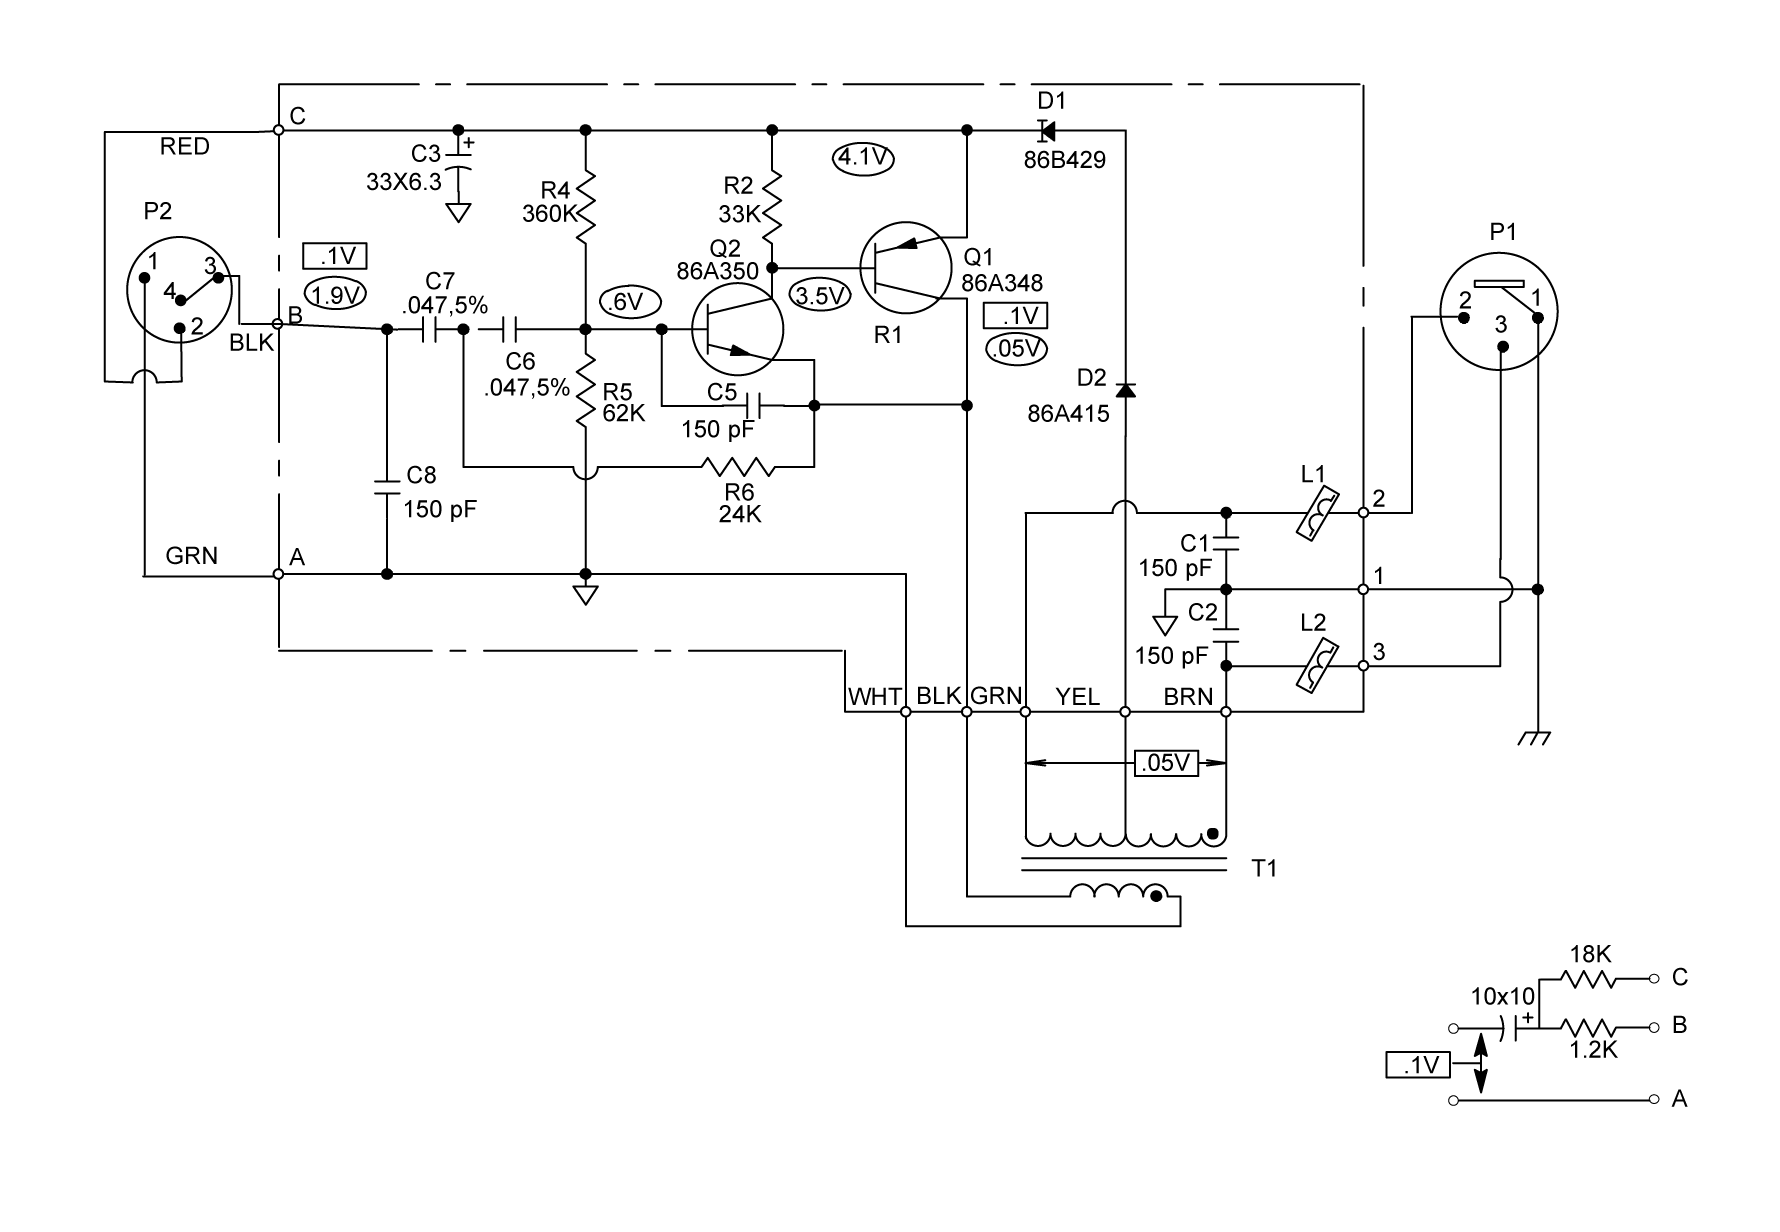 hight resolution of sm93 preamplifier circuit diagram